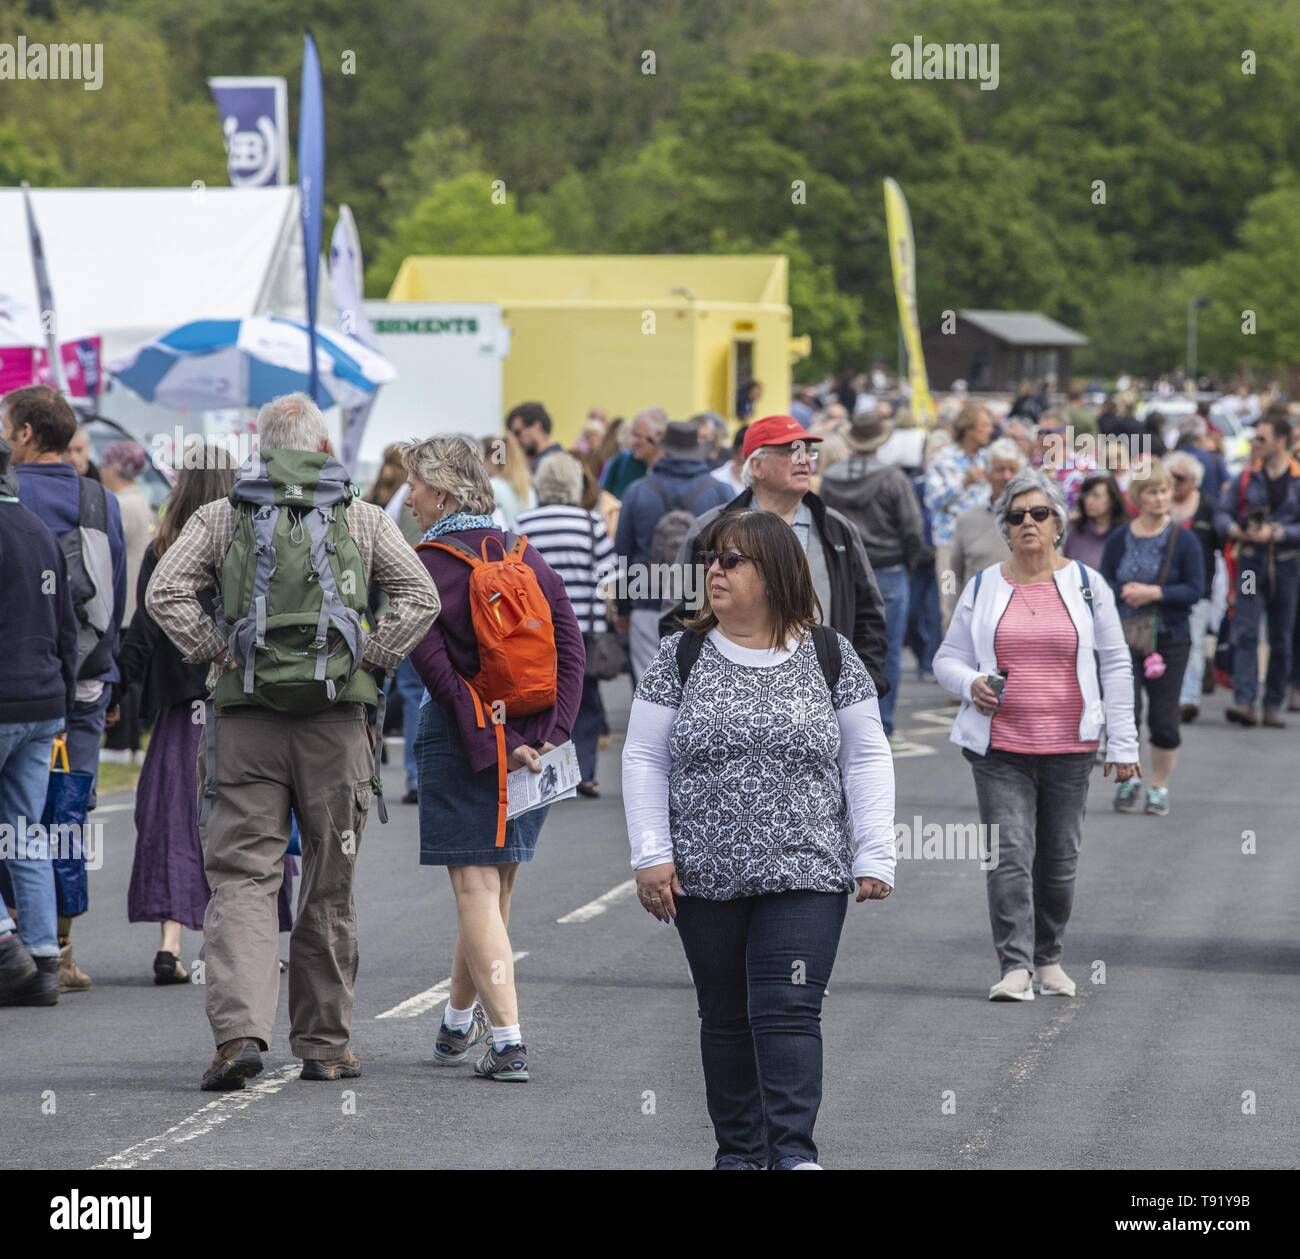 Exeter, Devon, UK. 16th May 2019 Crowds in their thousands on the first day of the Devon County Show, at the Westpoint Showground, Exeter Credit: Photo Central/Alamy Live News Stock Photo